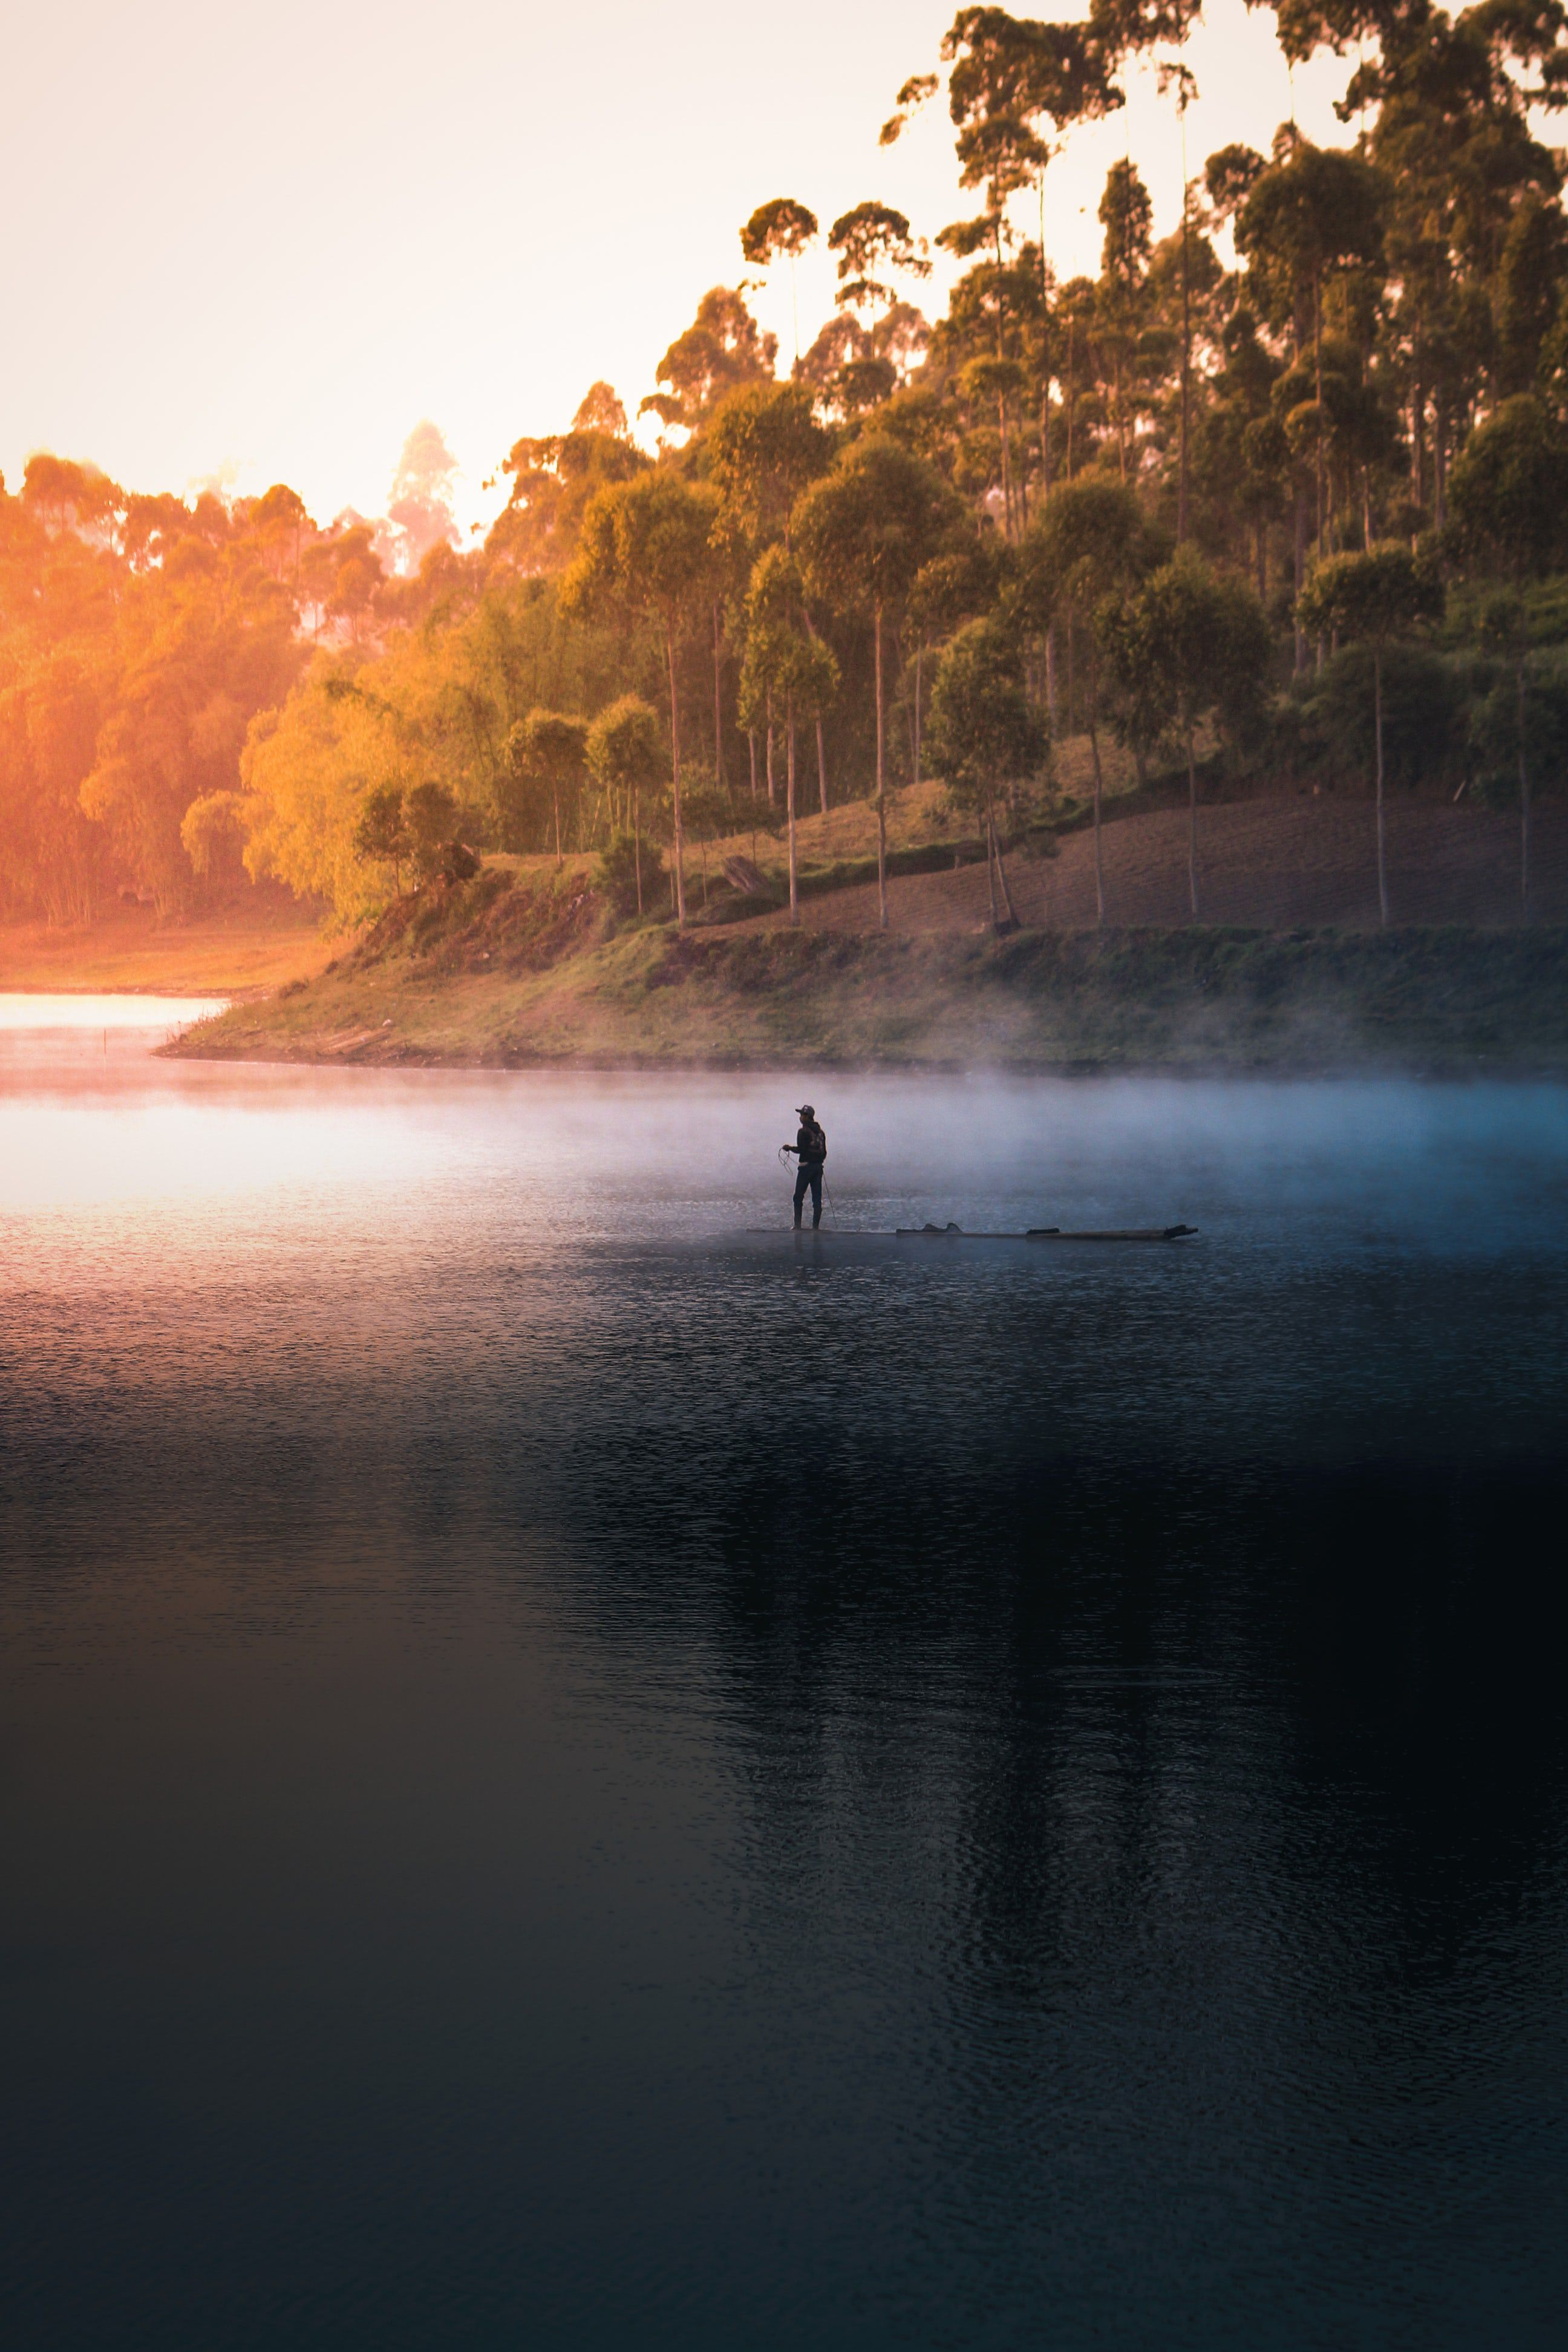 Best 100 Fishing Pictures Download Free Images On Unsplash Nature Wallpaper Cool Backgrounds For Iphone Nature